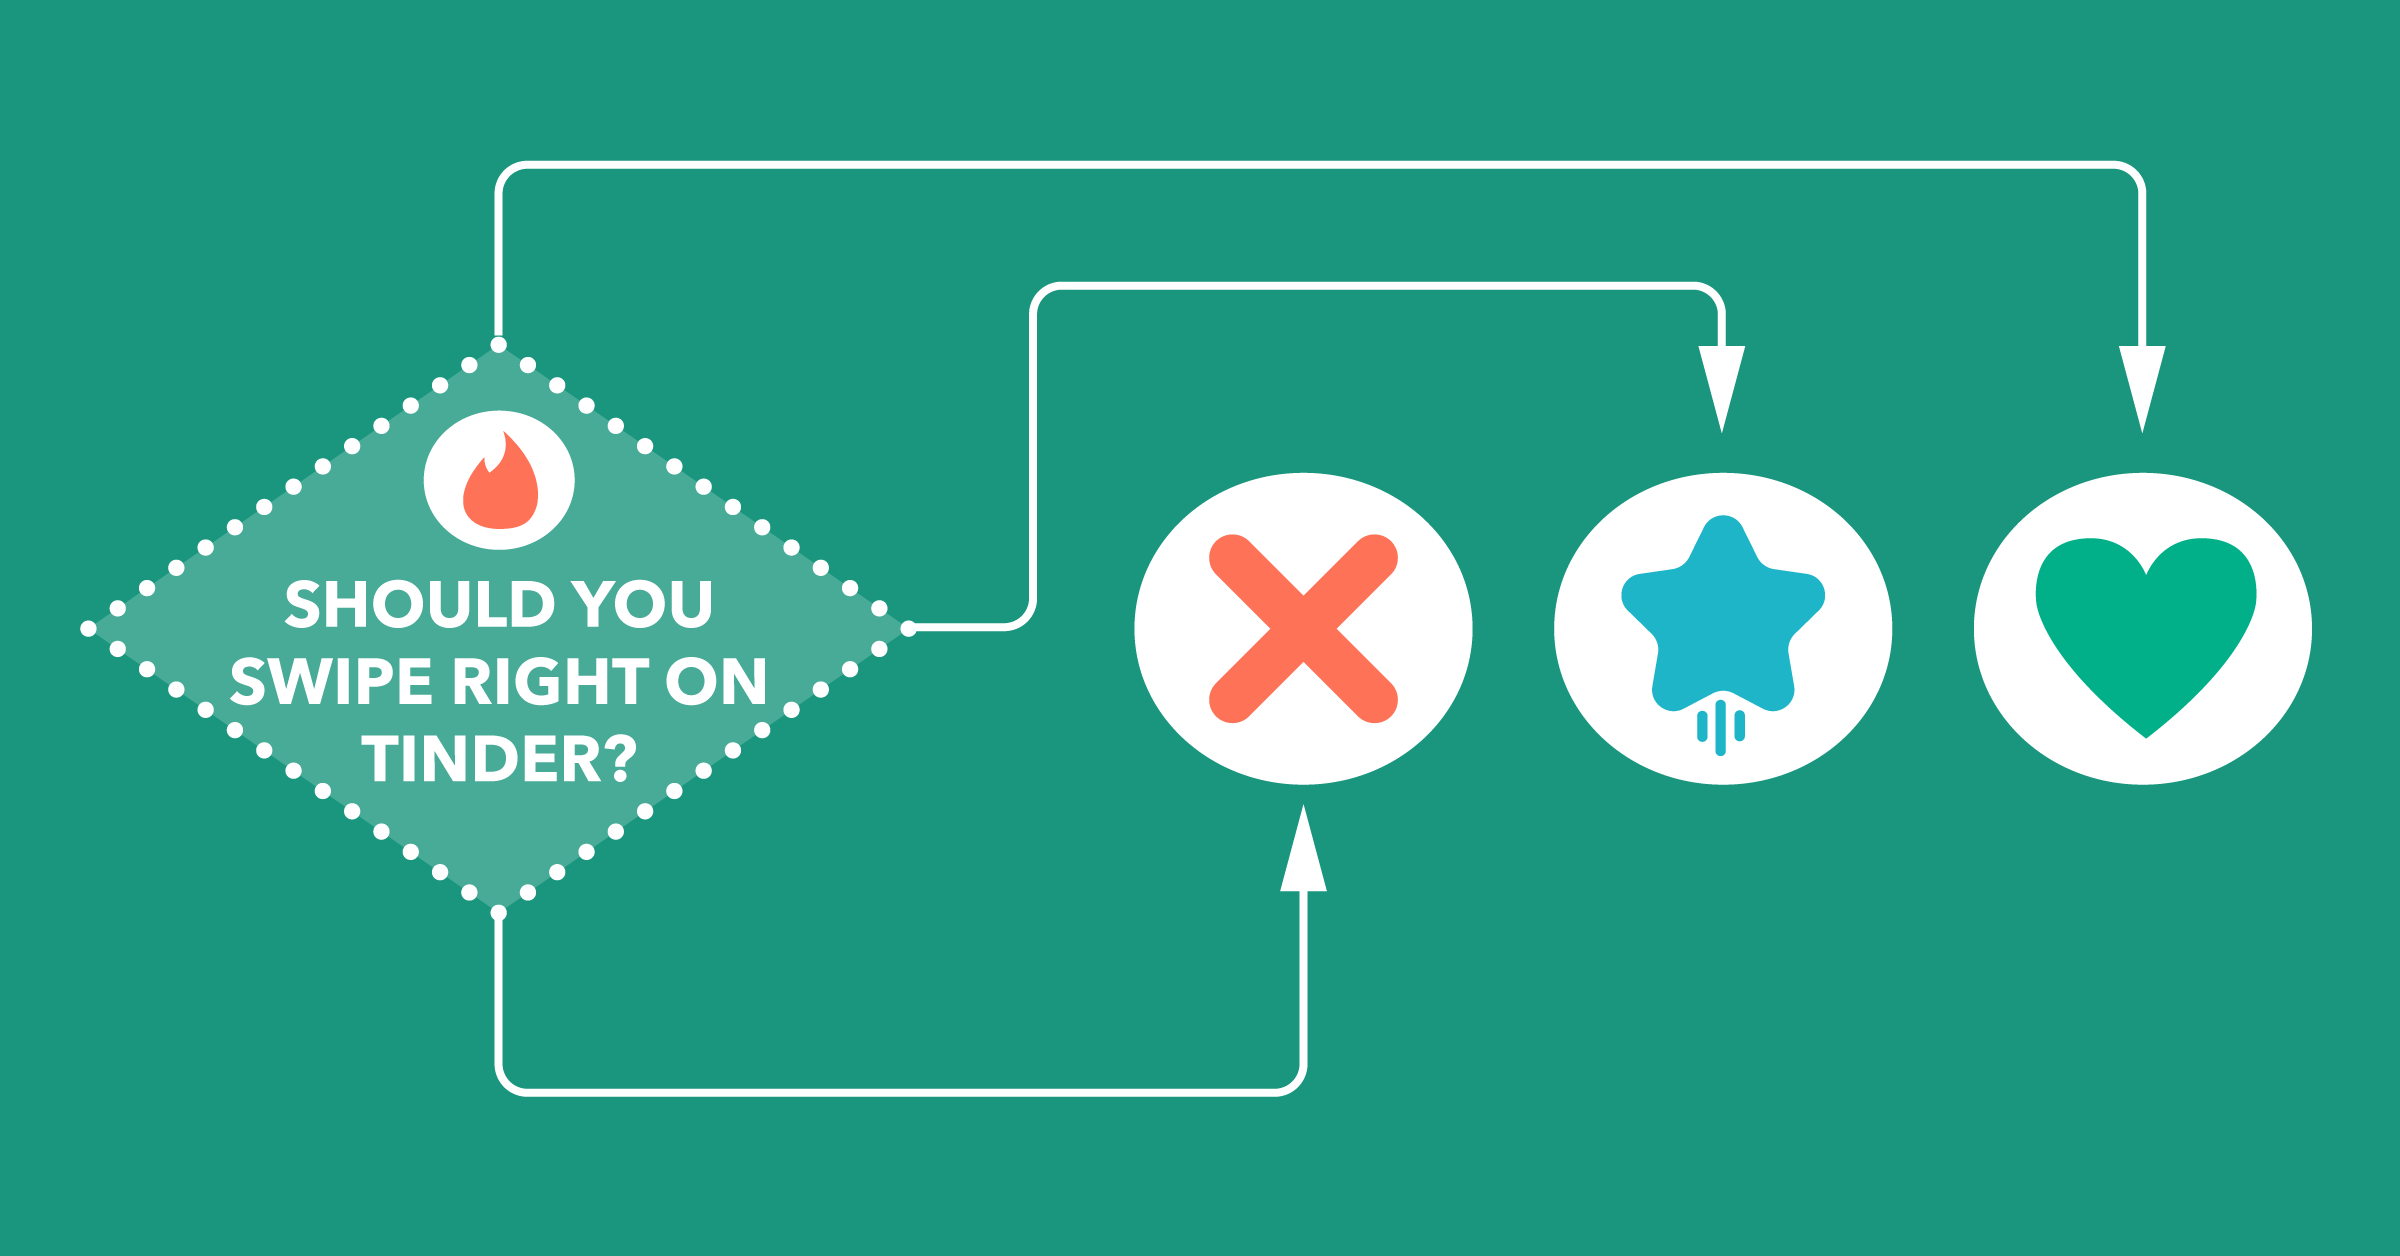 Should you swipe right on Tinder? [Flowchart]